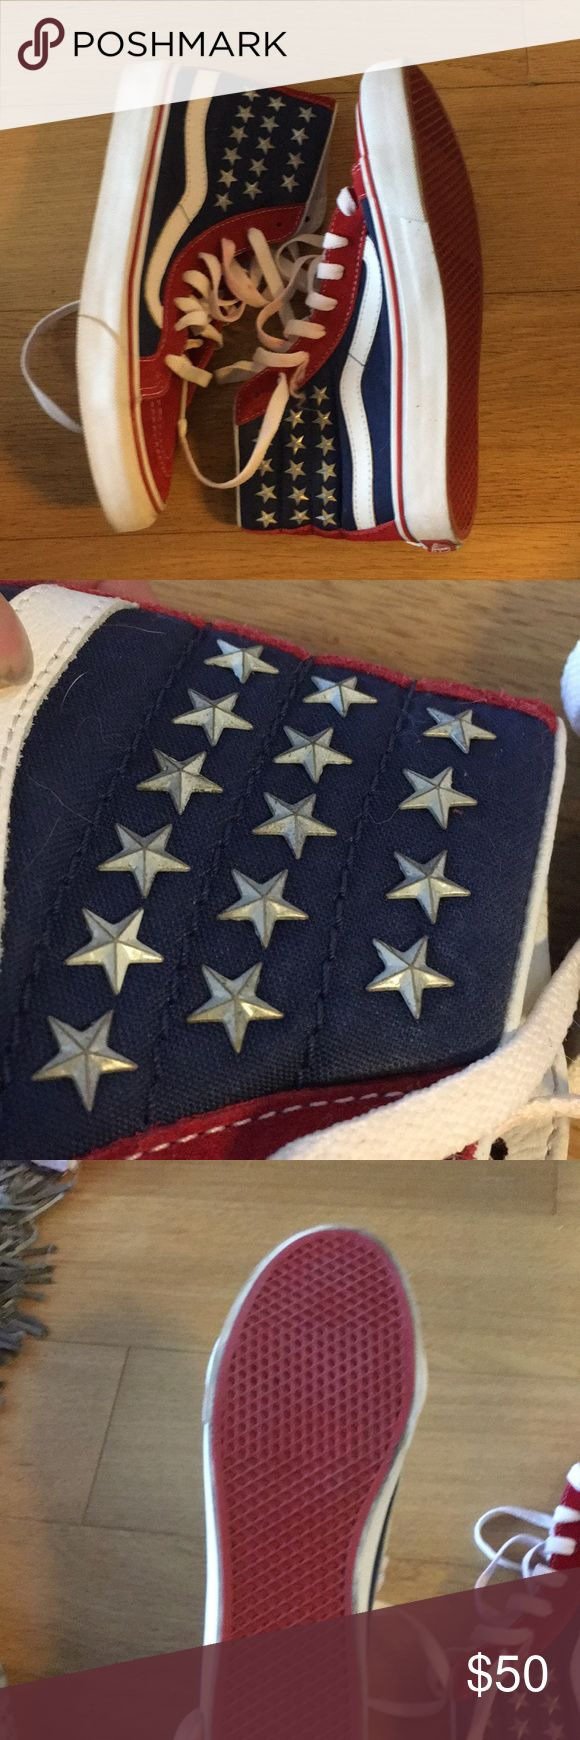 American Flag Vans. Size 6.0 women's 5.0 boys Red suede and blue canvas High top vans. Stars are actual 3D studs. Barely worn Vans Shoes Sneakers